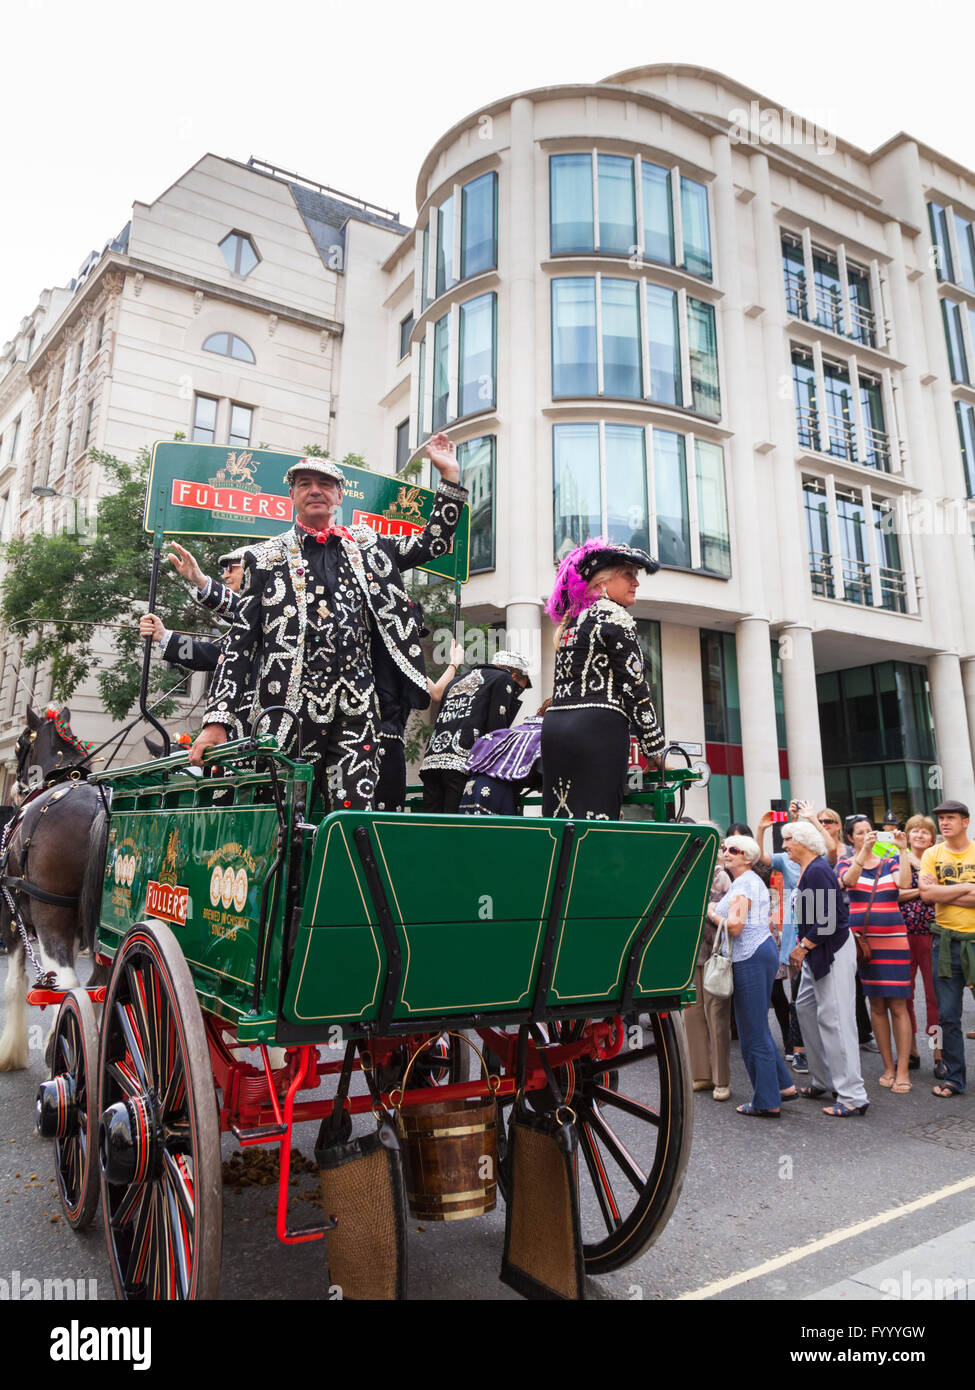 Shaun Austin, the Pearly King of Tower Hamlets, waves from an old Fuller's brewery wagon at the annual Pearly - Stock Image